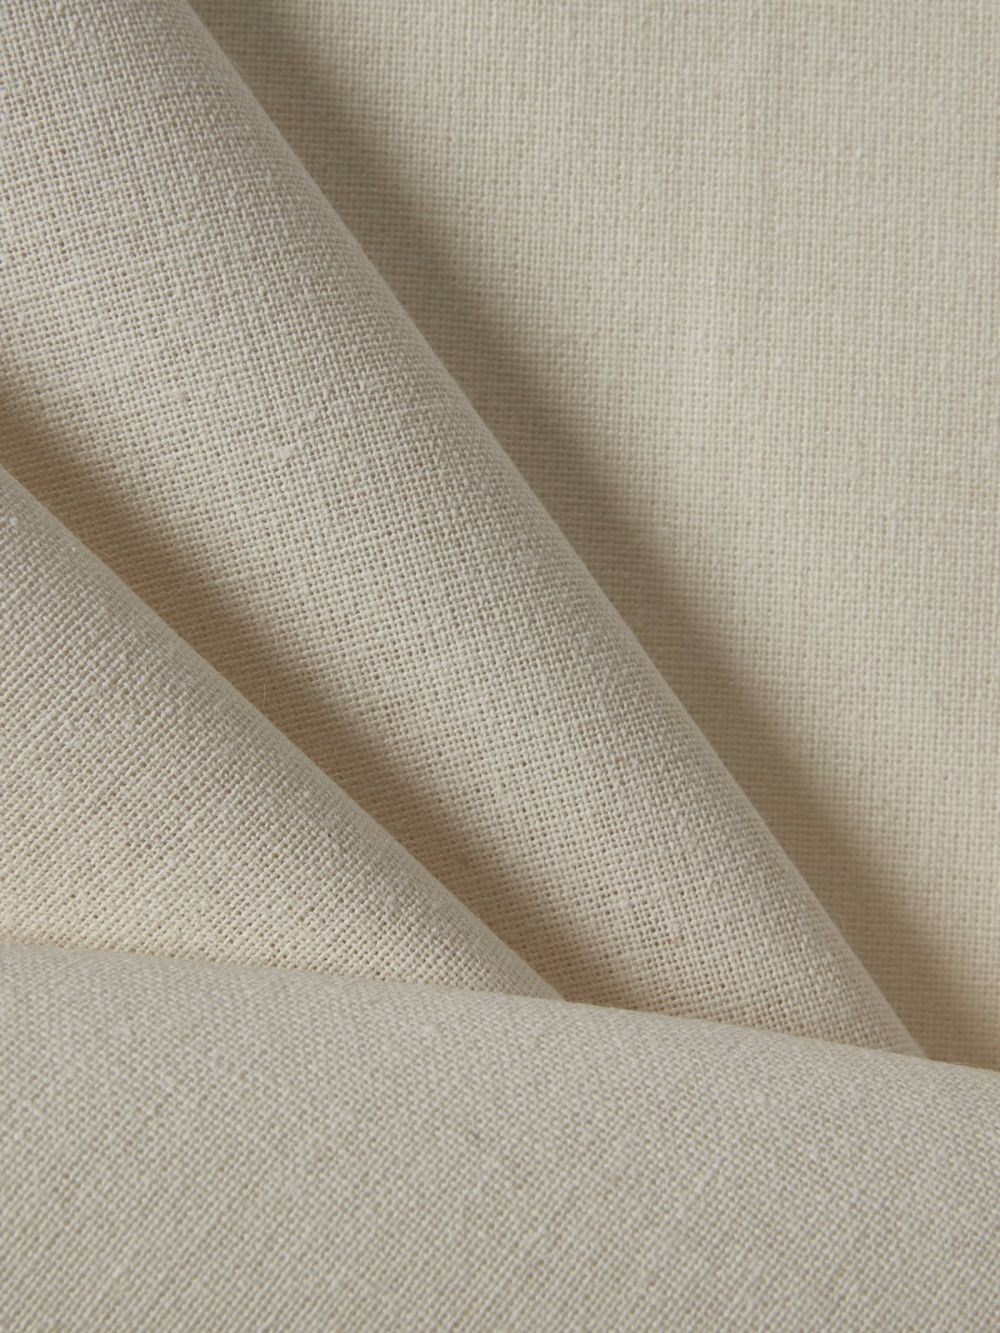 Wool Upholstery Contract Domestic Designer Fabric CRIB 5 Woven in UK Freolic